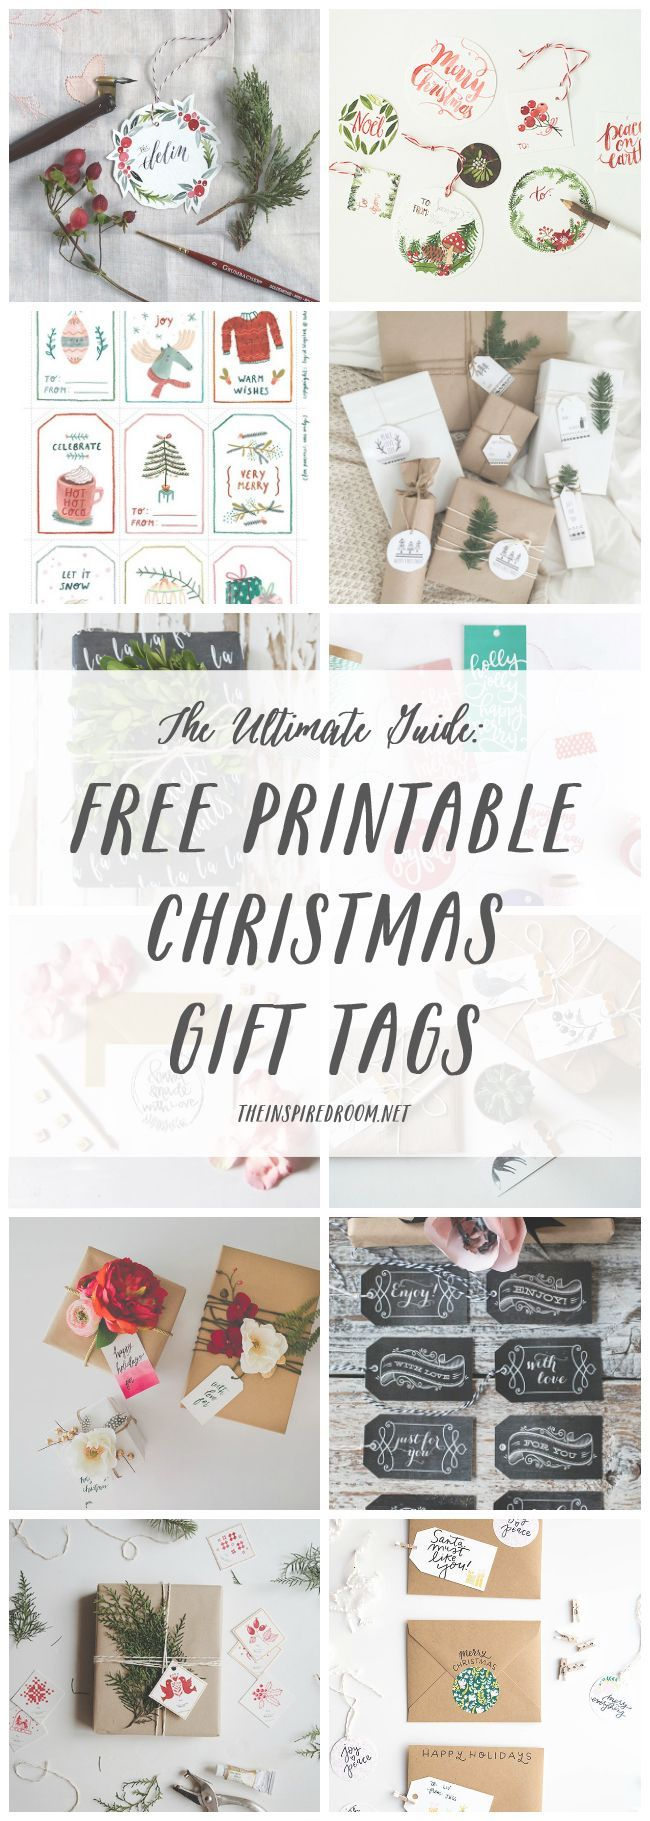 The Ultimate Guide: FREE Printable Christmas Gift Tags | Pinterest ...